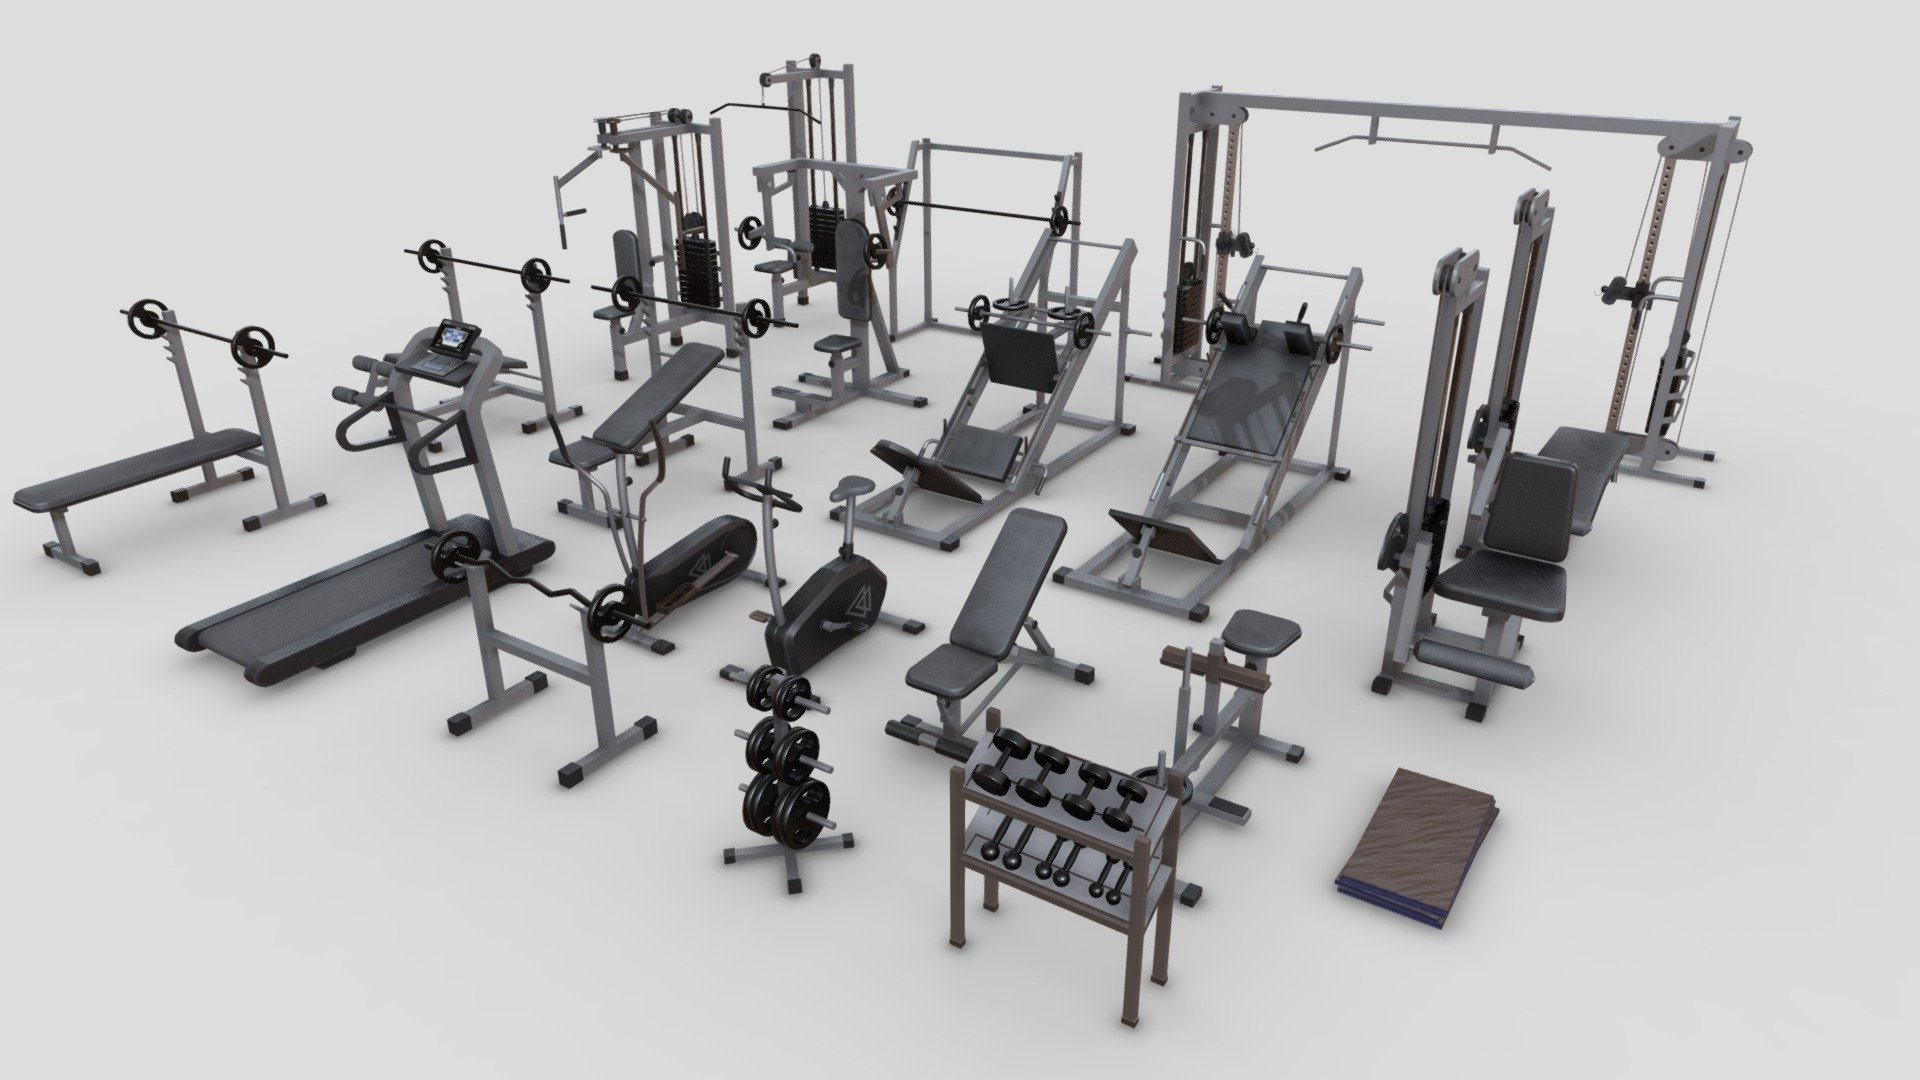 Gym Equipments - Buy Royalty Free 3D model by Elvair Lima (@elvair)  [14a4a06]